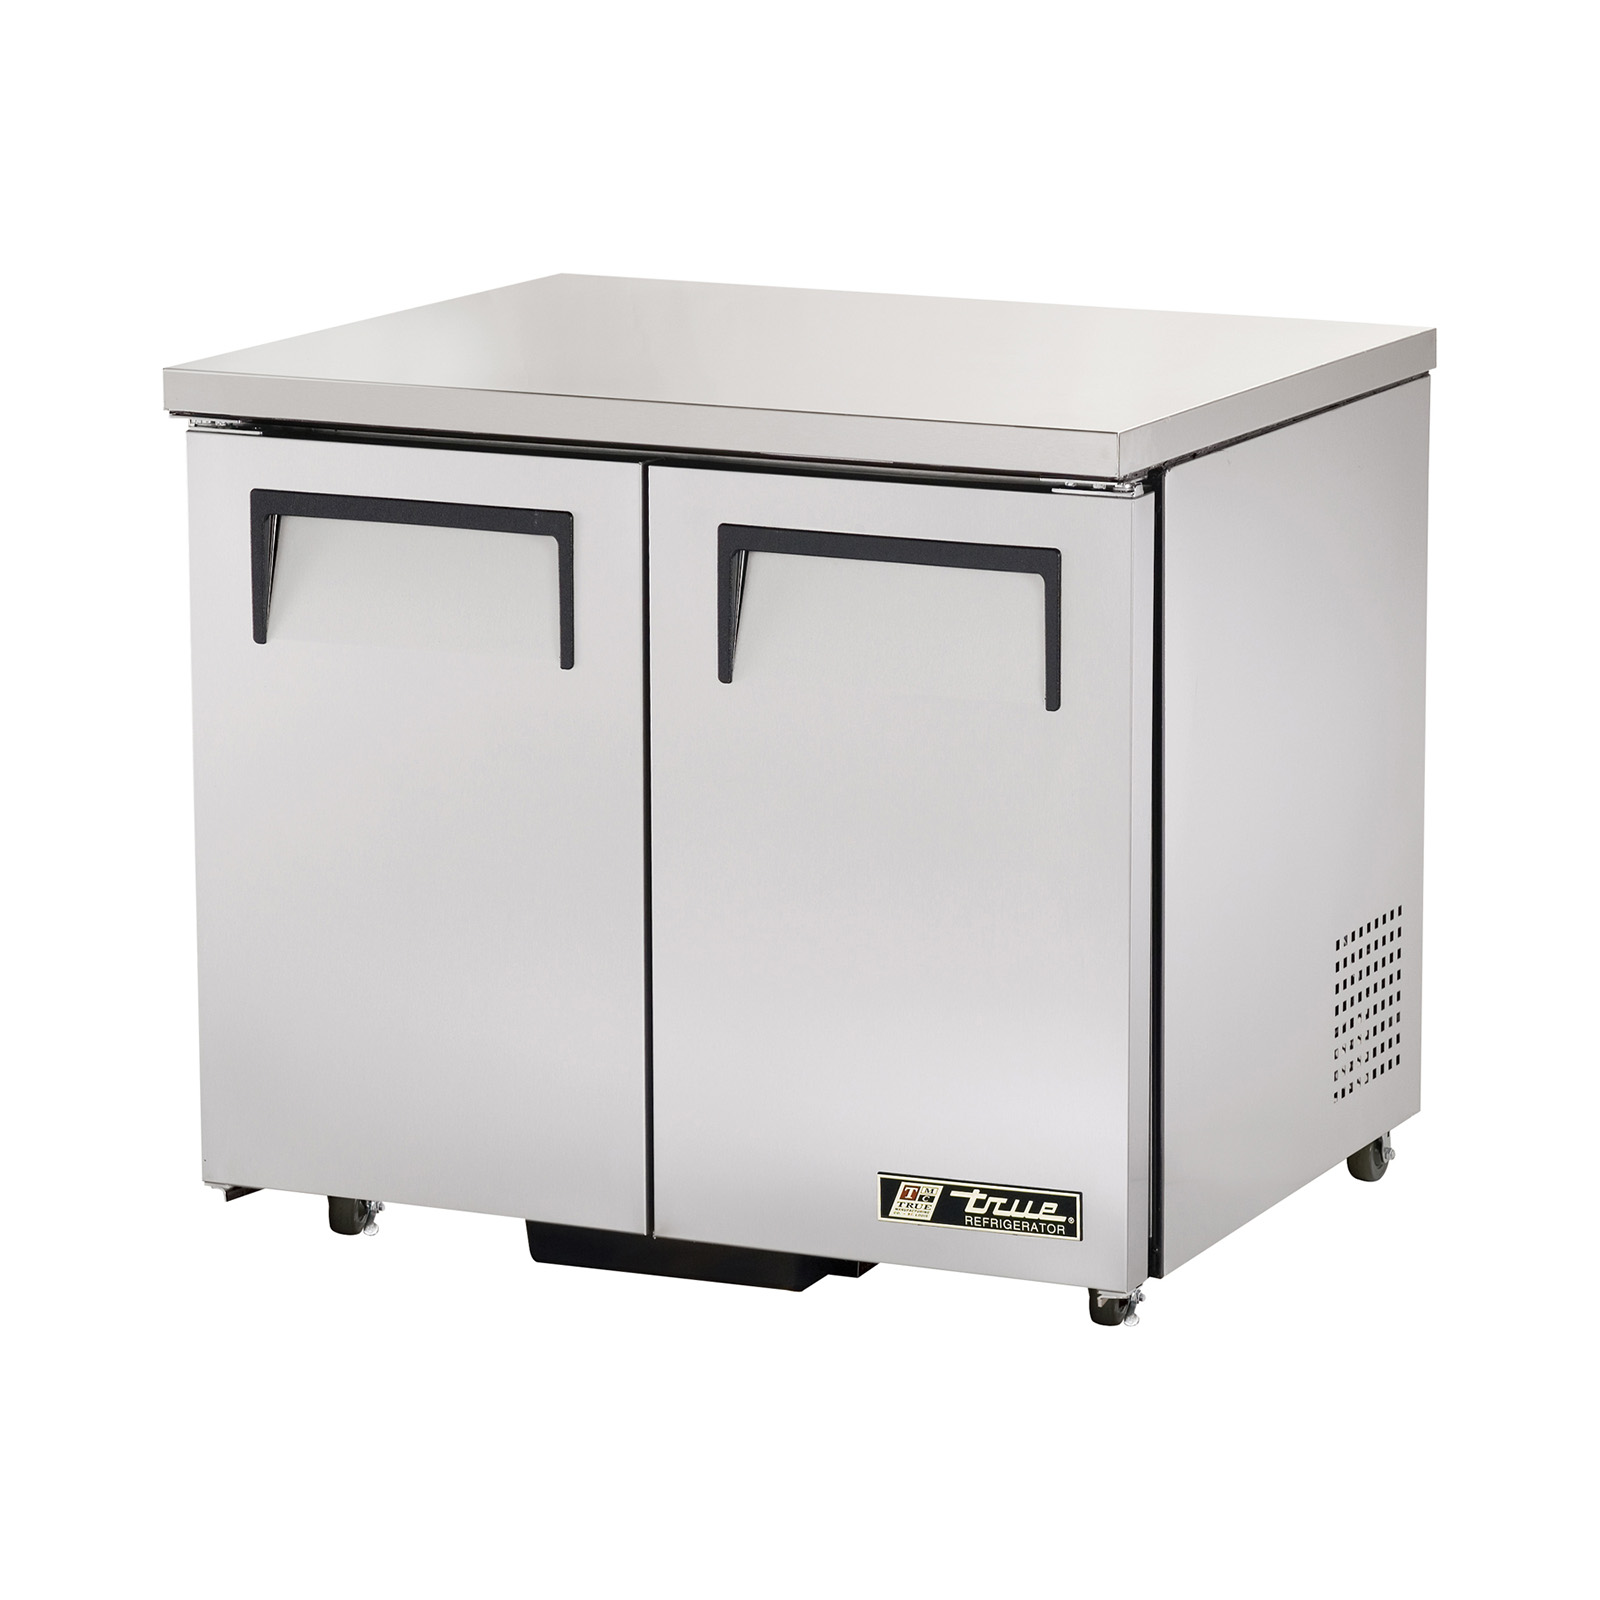 TUCADA True ADA Compliant Undercounter Refrigerator F - Ada restaurant table